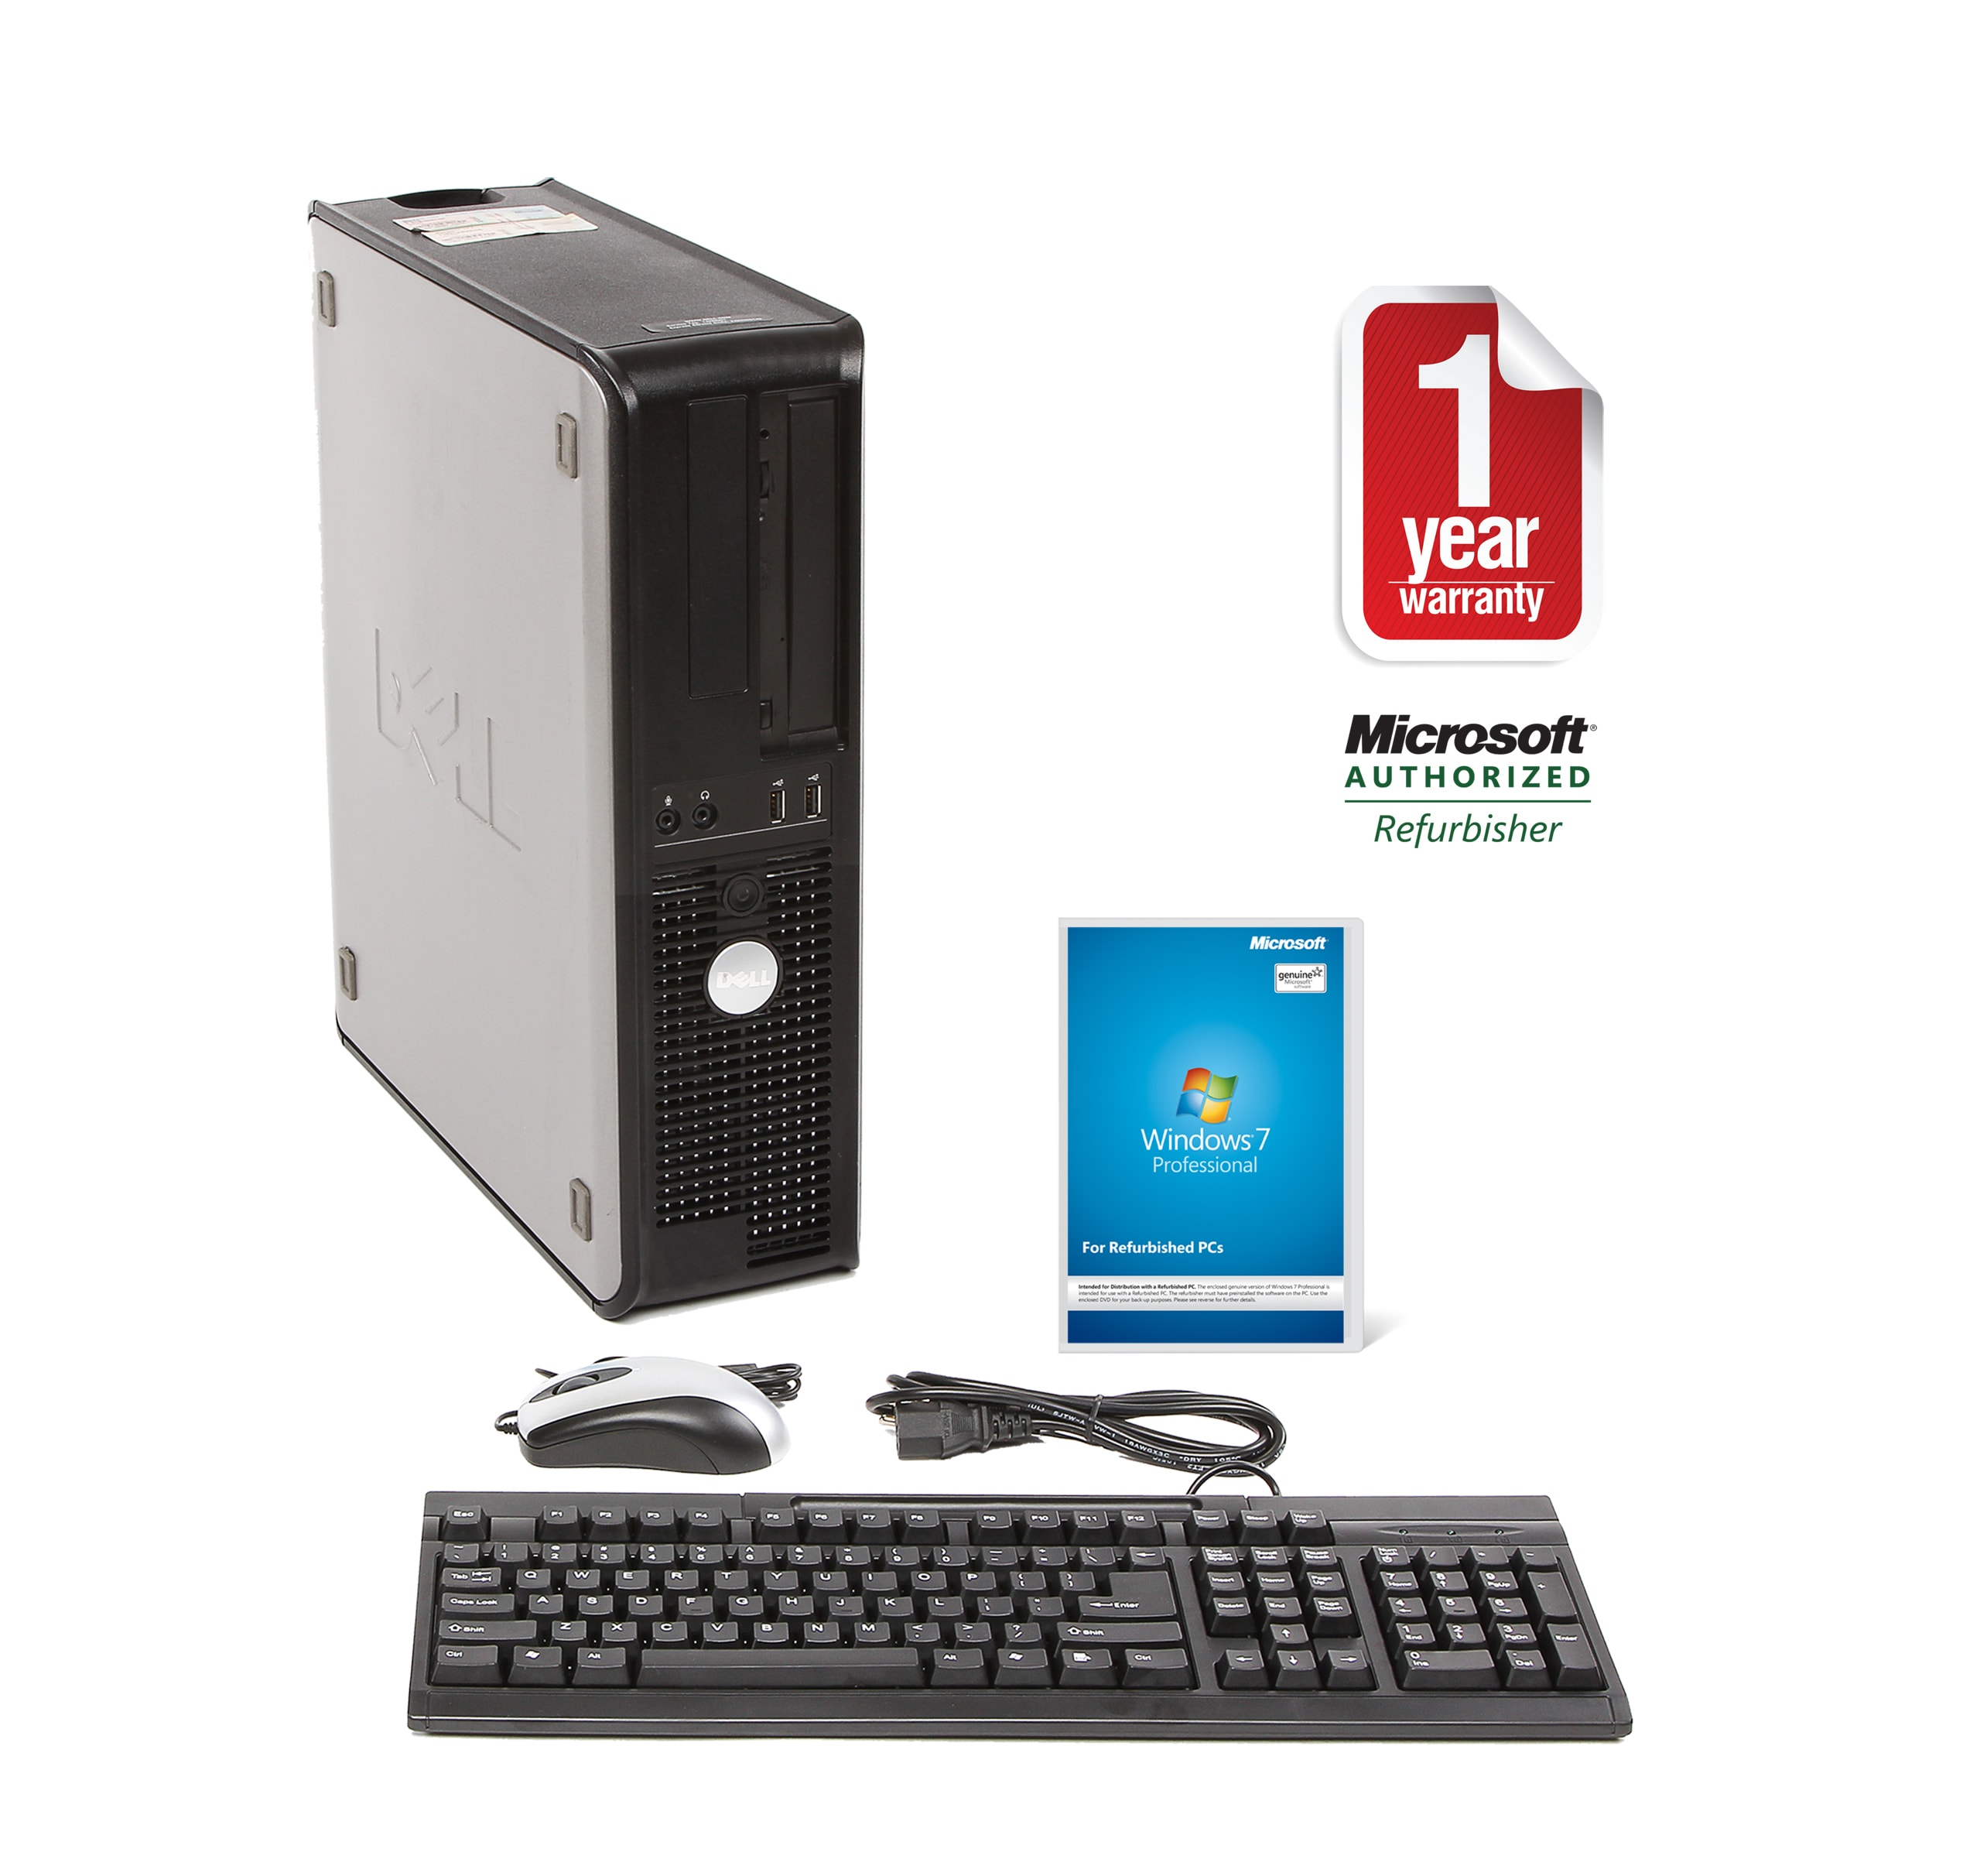 Dell Optiplex 740 AMD A64x2 2.6GHz CPU 4GB RAM 1TB HDD Windows 10 Pro Desktop PC (Refurbished)